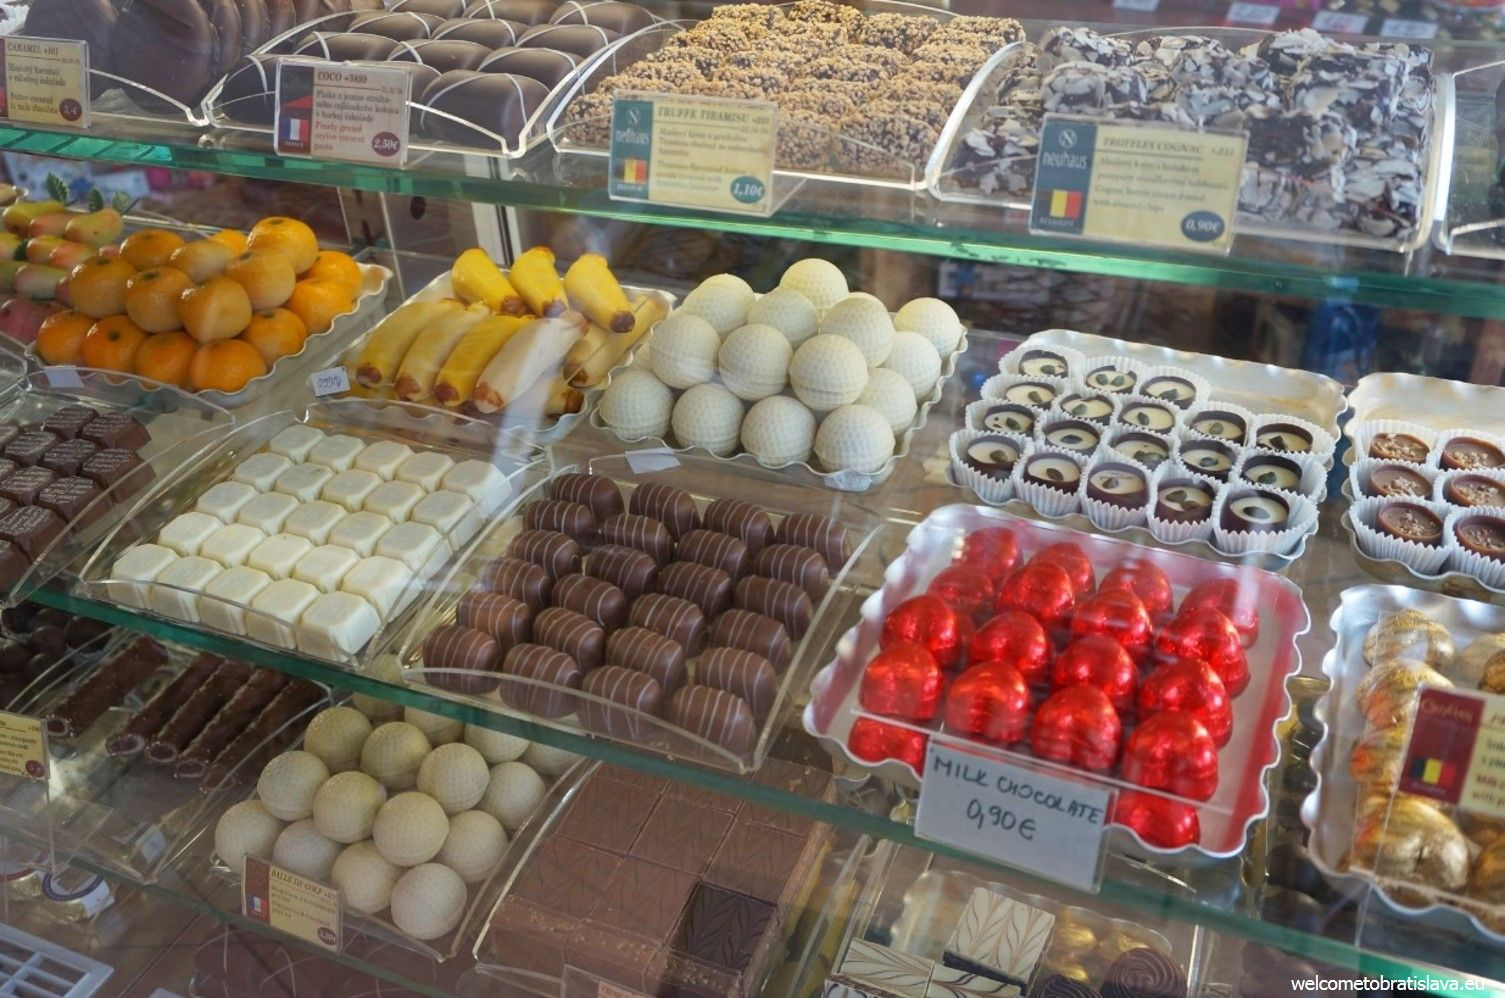 You can purchase some good chocolate truffles here